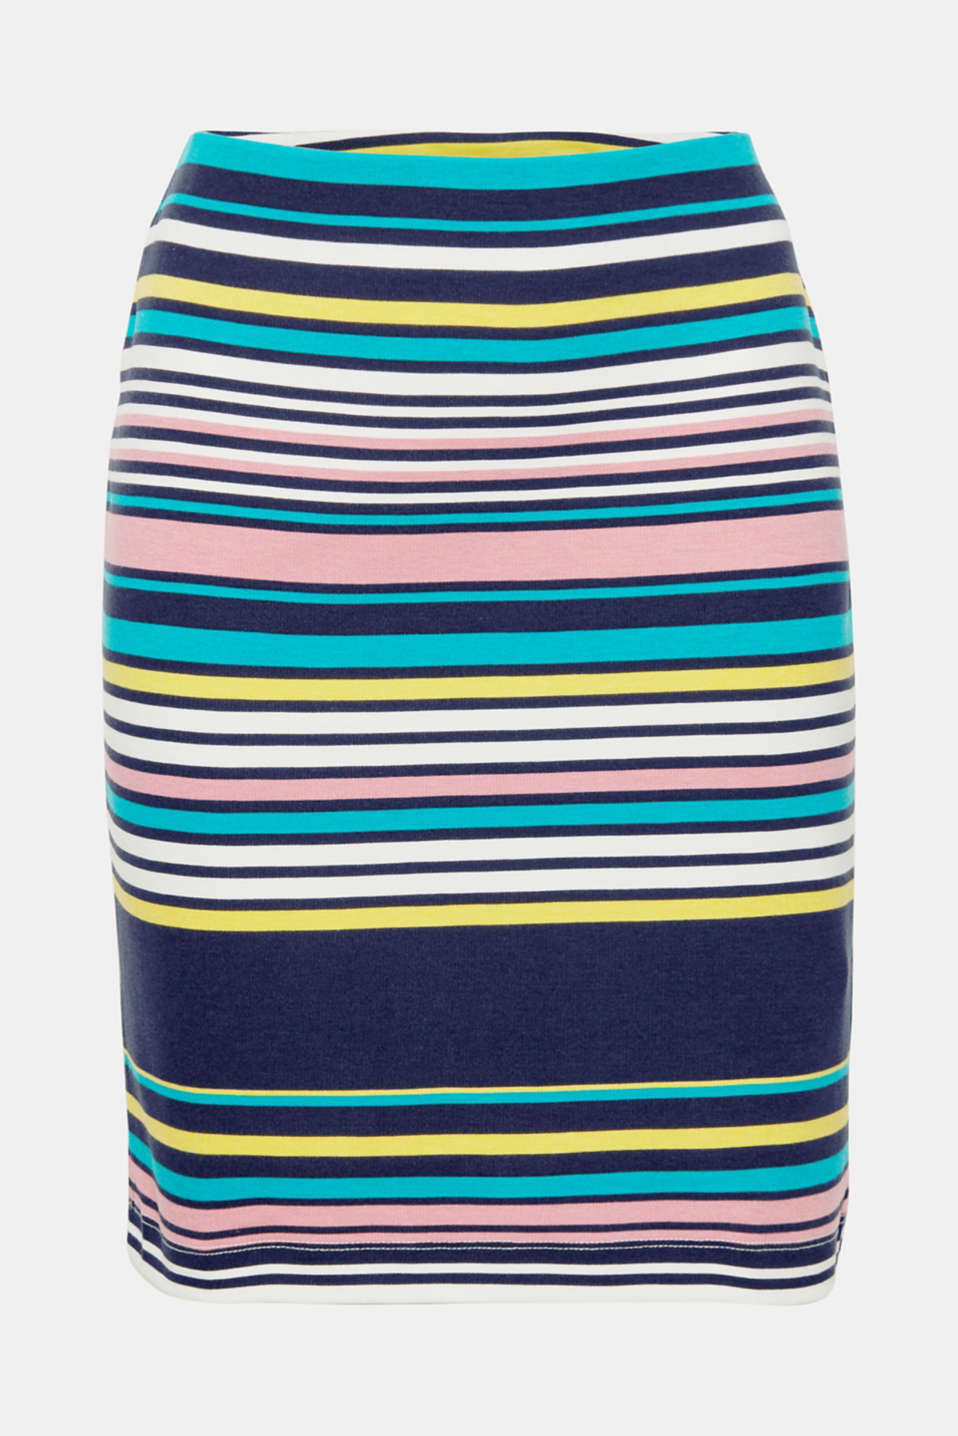 Good mood guaranteed! This colourful jersey skirt with a bold stripe print creates fun styles for everyday wear.